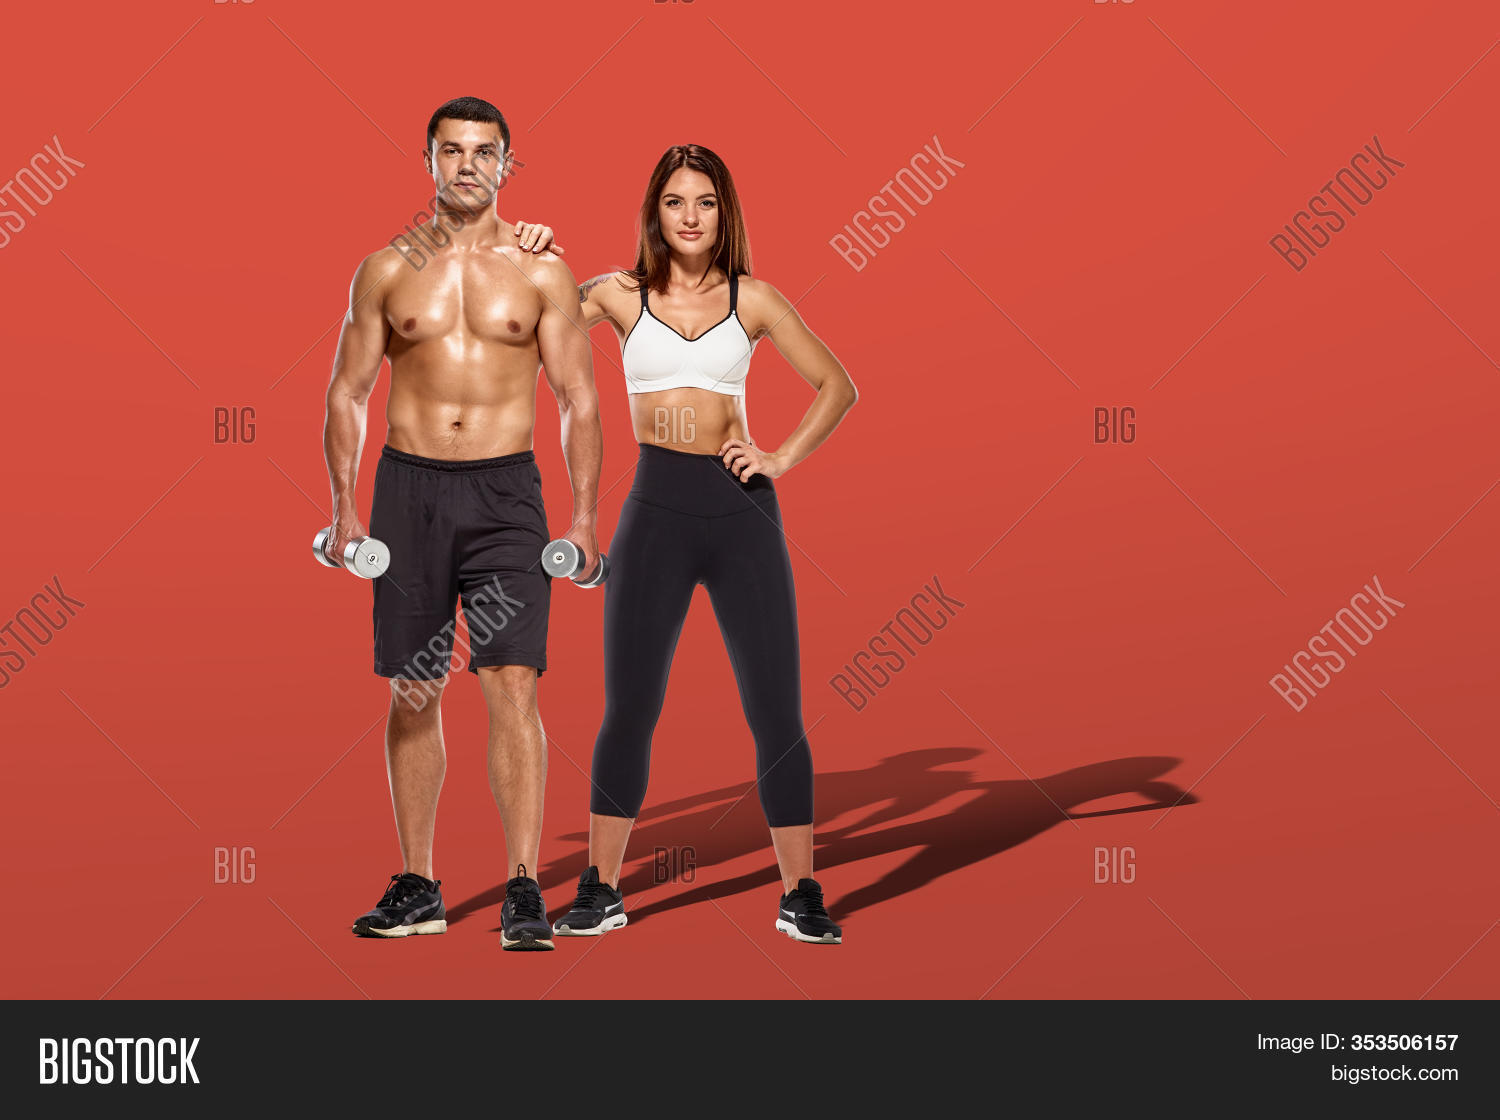 Healthy Couple Image Photo Free Trial Bigstock